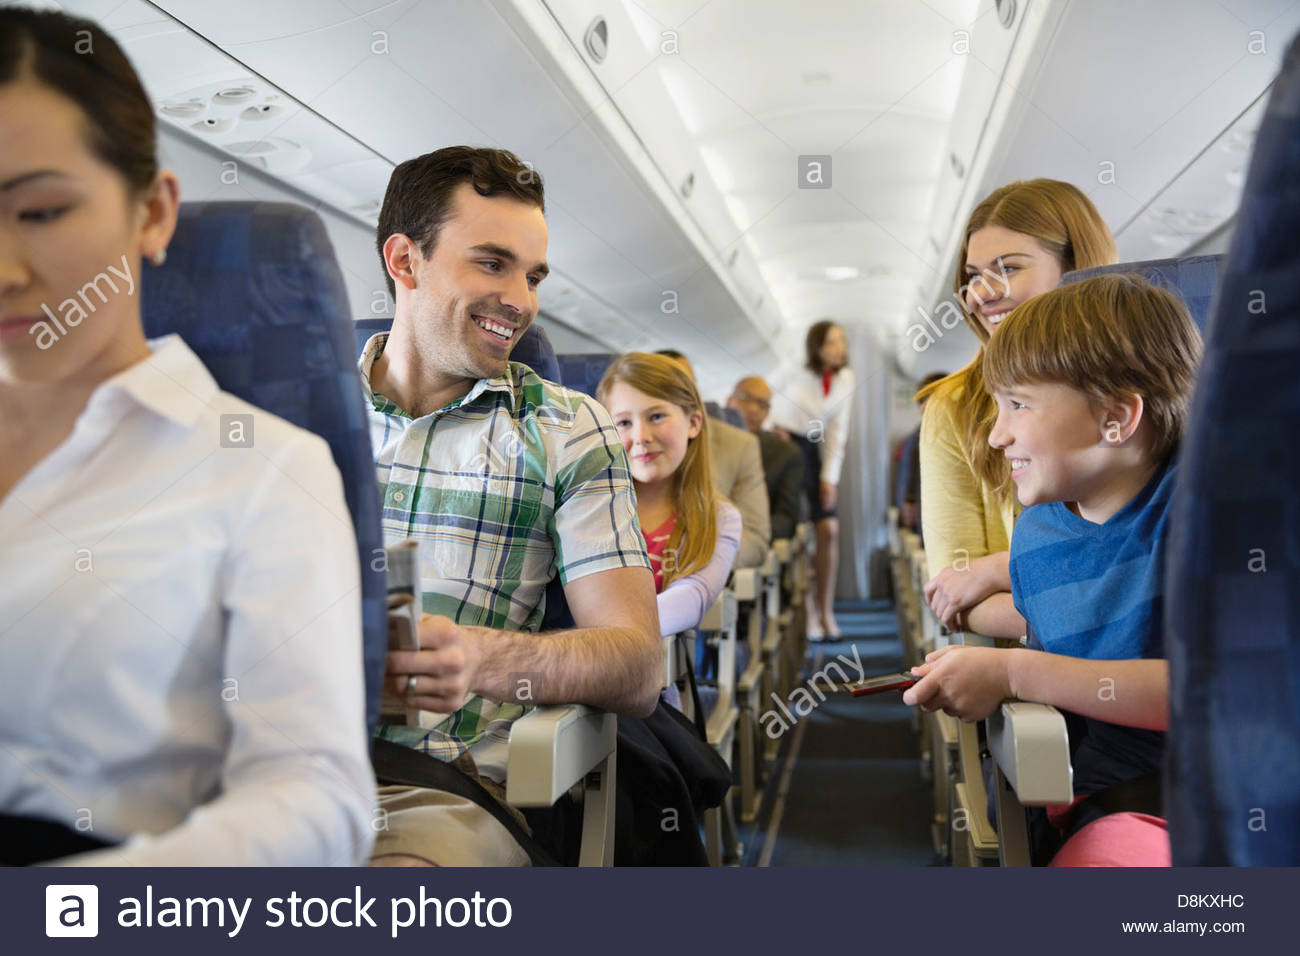 Smiling family traveling in airplane - Stock Image